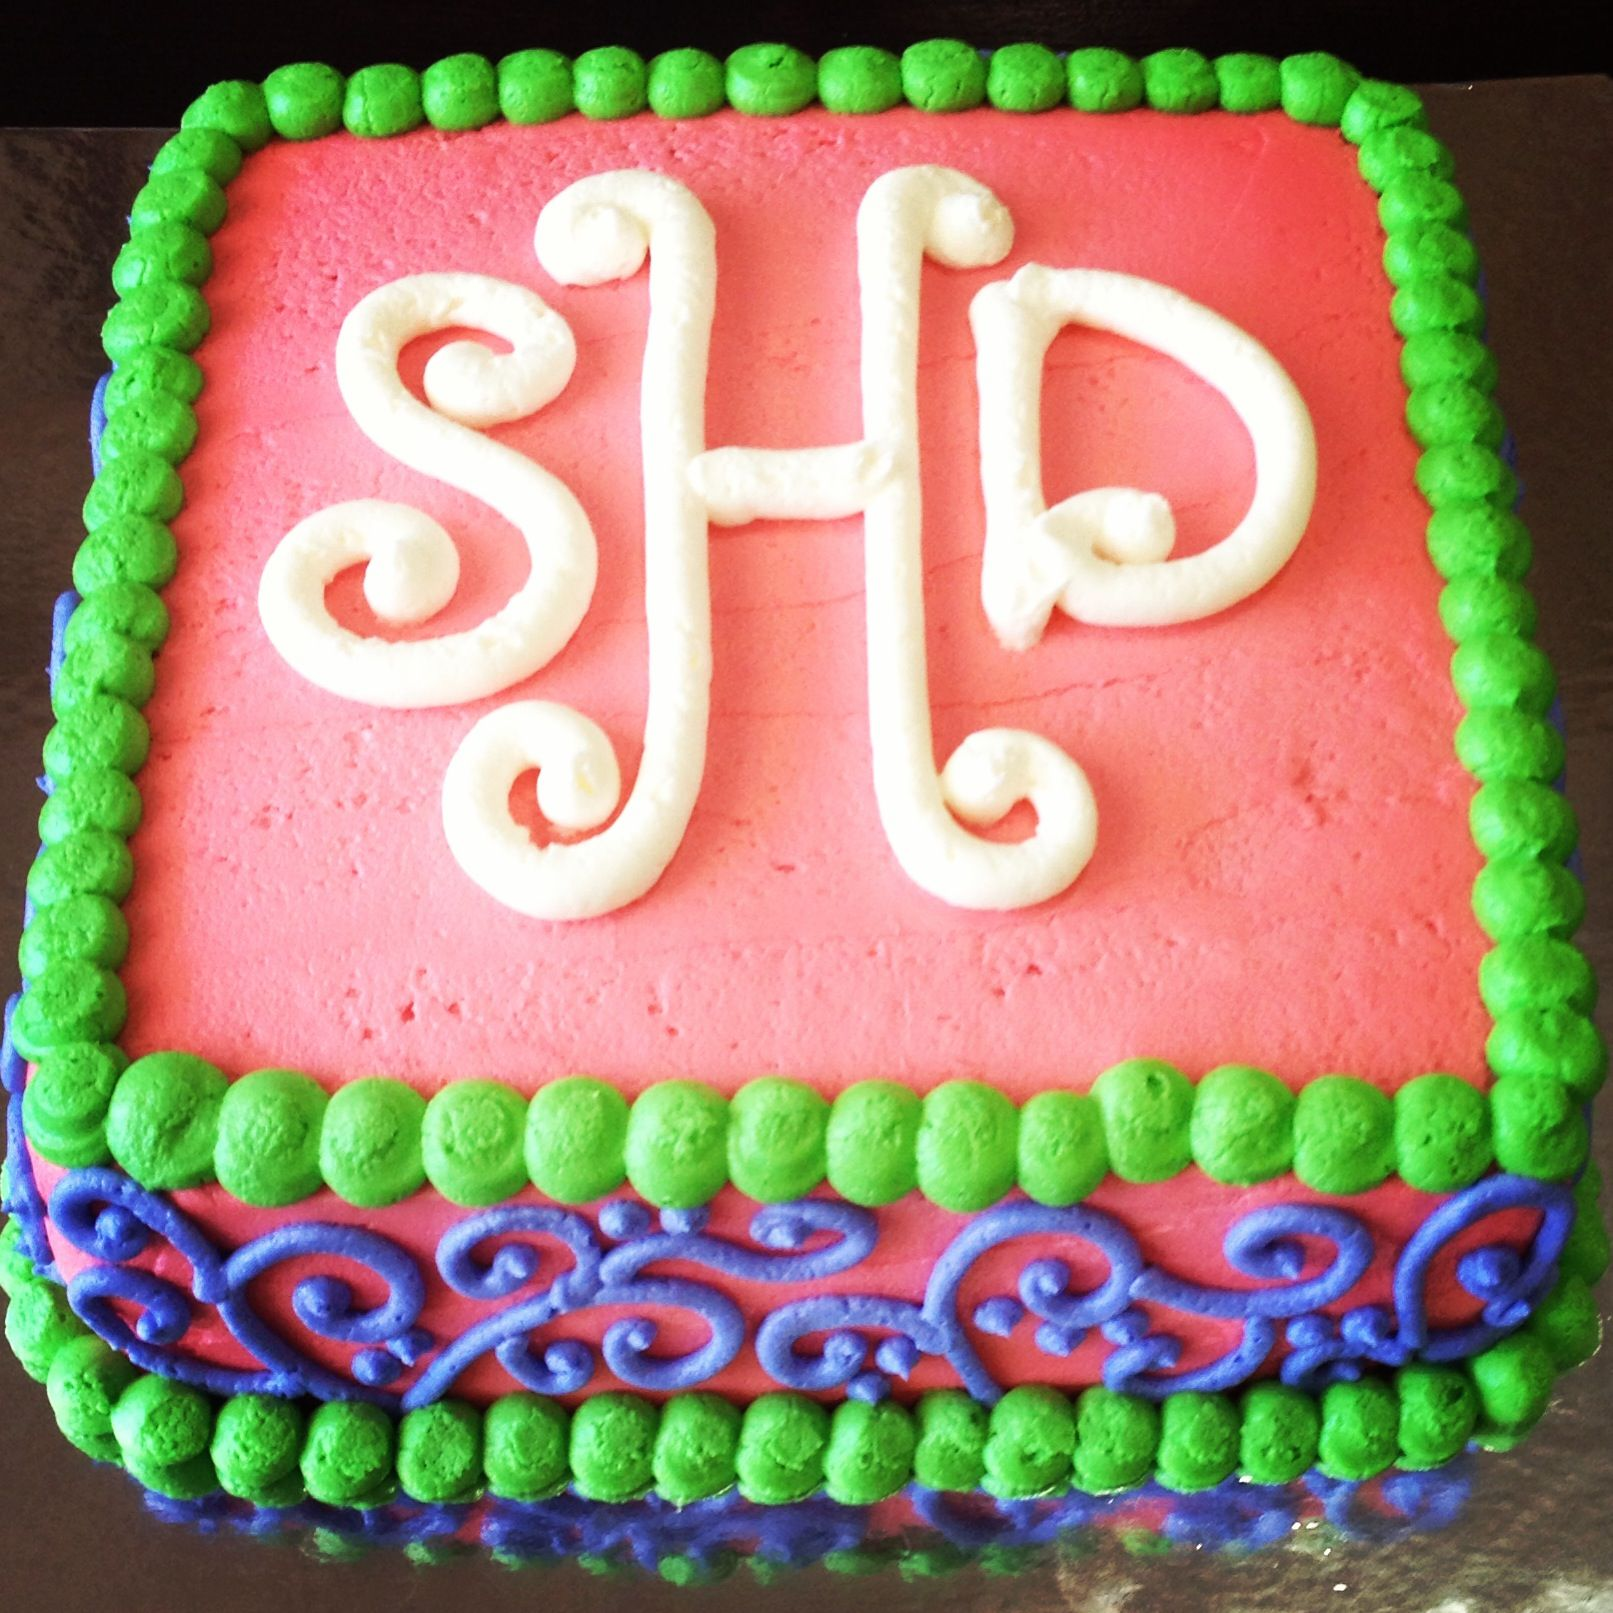 Phenomenal Monogram Birthday Cake Its A Southern Thing Coava Coffeehouse Funny Birthday Cards Online Aboleapandamsfinfo